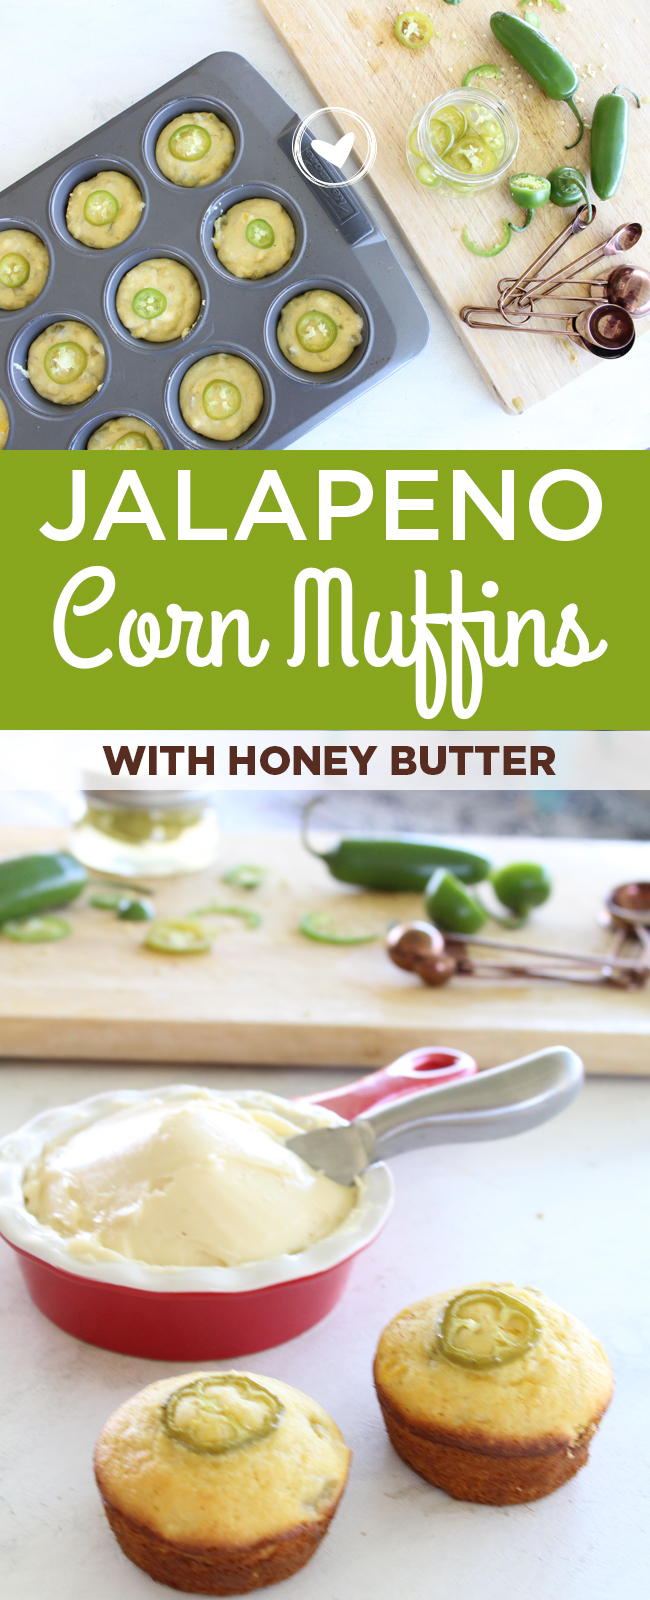 Jalapeno Corn Muffins with Whipped Honey Butter